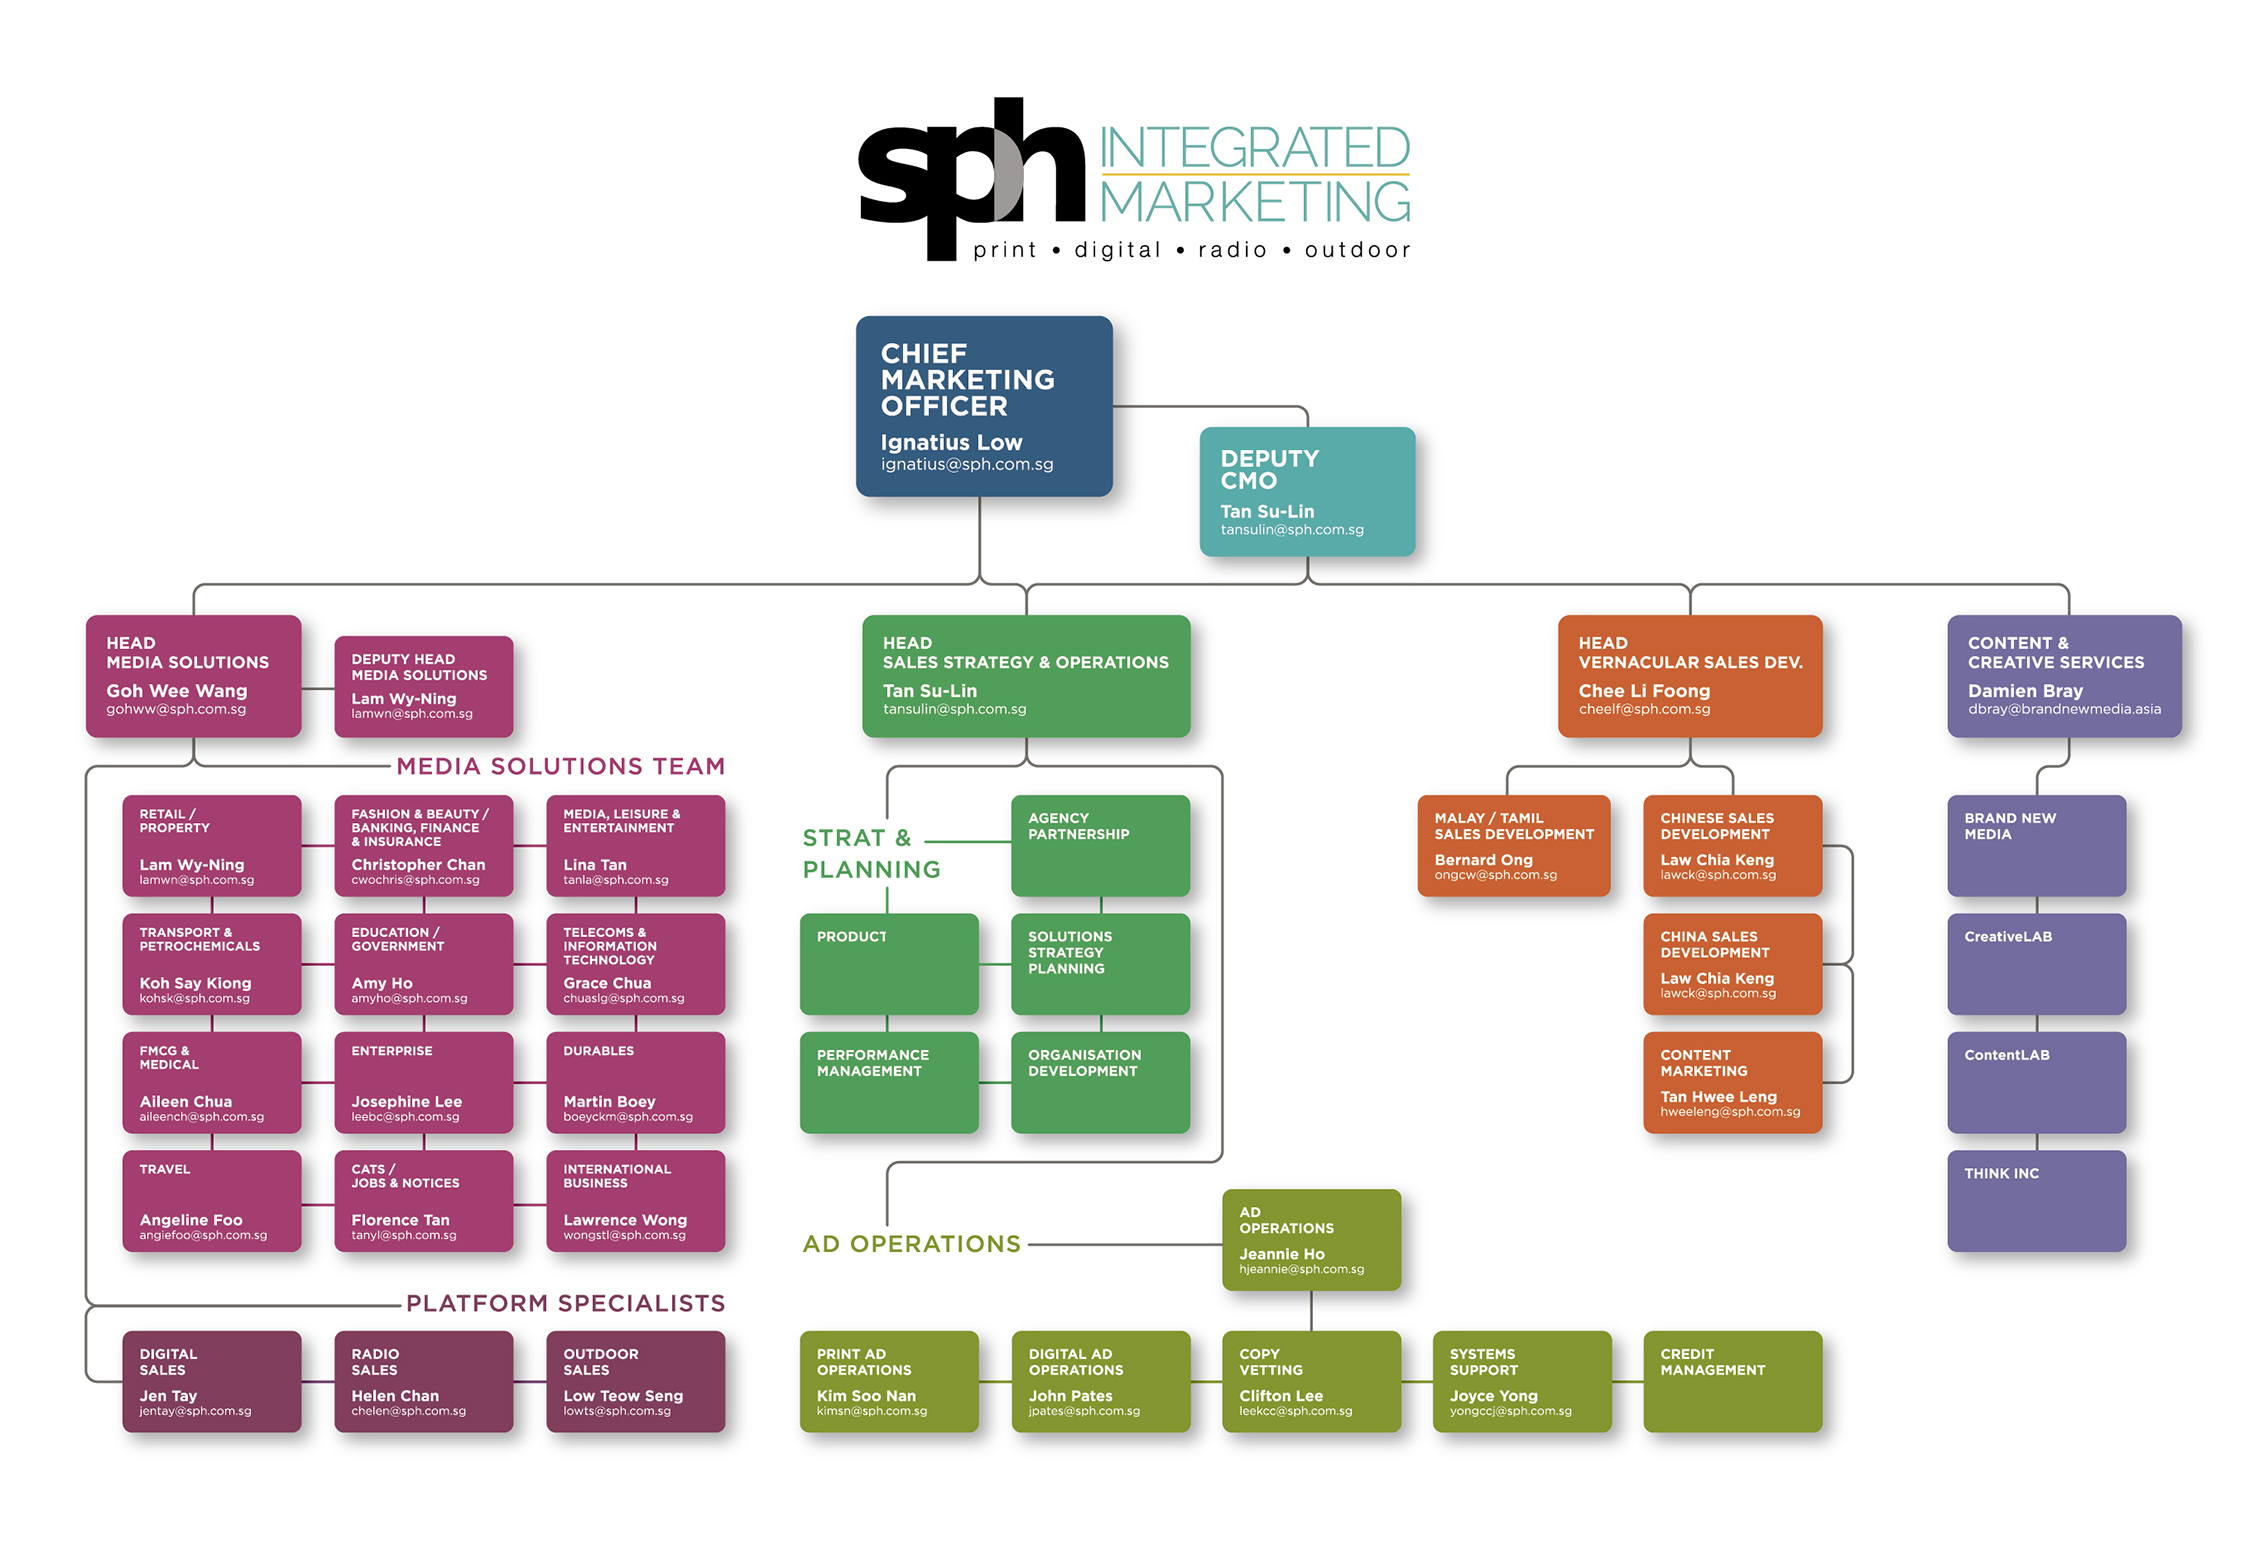 Sph Integrated Marketing Org Chart 2018